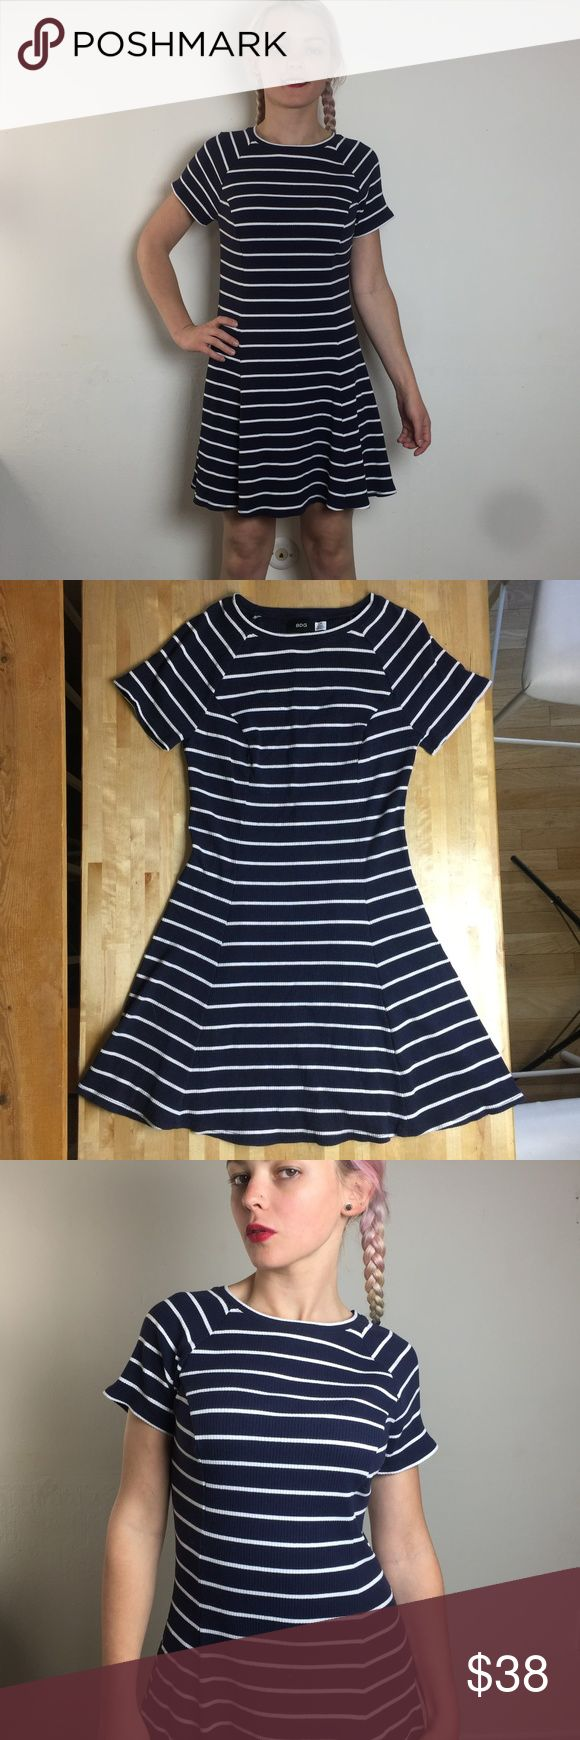 """BDG L navy/white striped cap sleeve mini dress Features a stretchy, body-hugging fit, ribbed fabric, a scoop neck, and a circle/skater-style skirt. Fabric content is 78% cotton, 18% rayon, 4% spandex. Made in Vietnam. In good used condition. One tiny bleach spot as pictured (nearly unnoticeable). No pilling, fading, or holes.  Measurements laid flat are approx. ("""") : Armpits across: 15 Waistline across: 14 Shoulder to hemline: 23   Armpit to hemline: 32.5 Urban Outfitters Dresses Mini"""